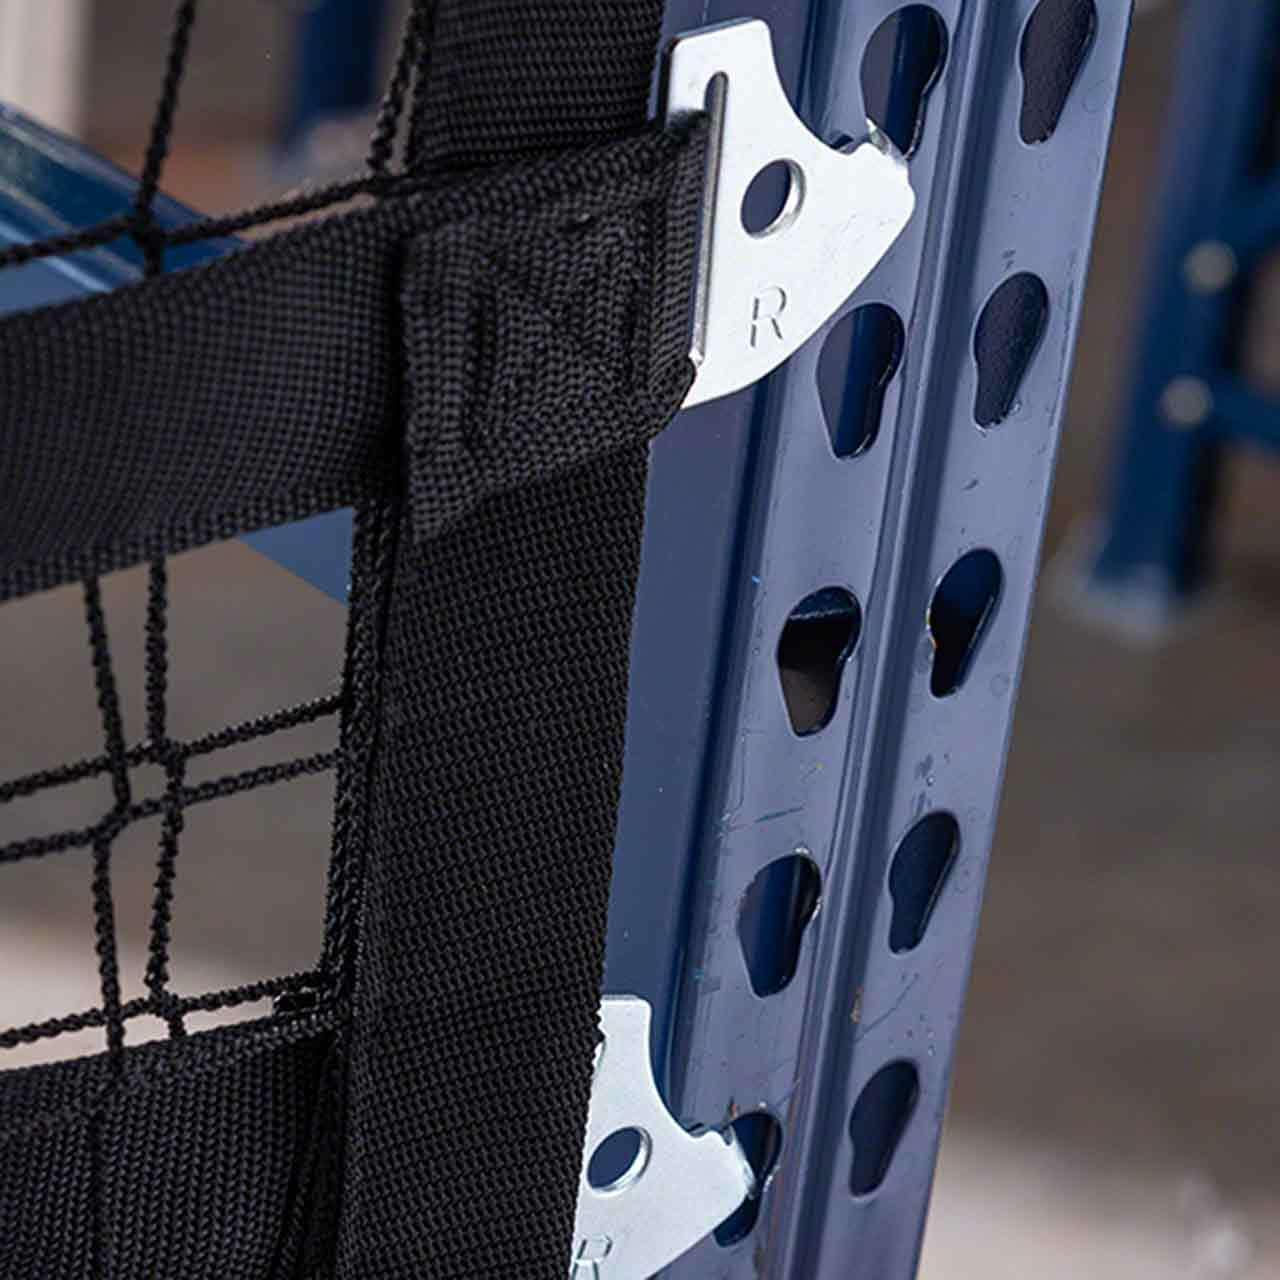 Easily add to existing pallet rack